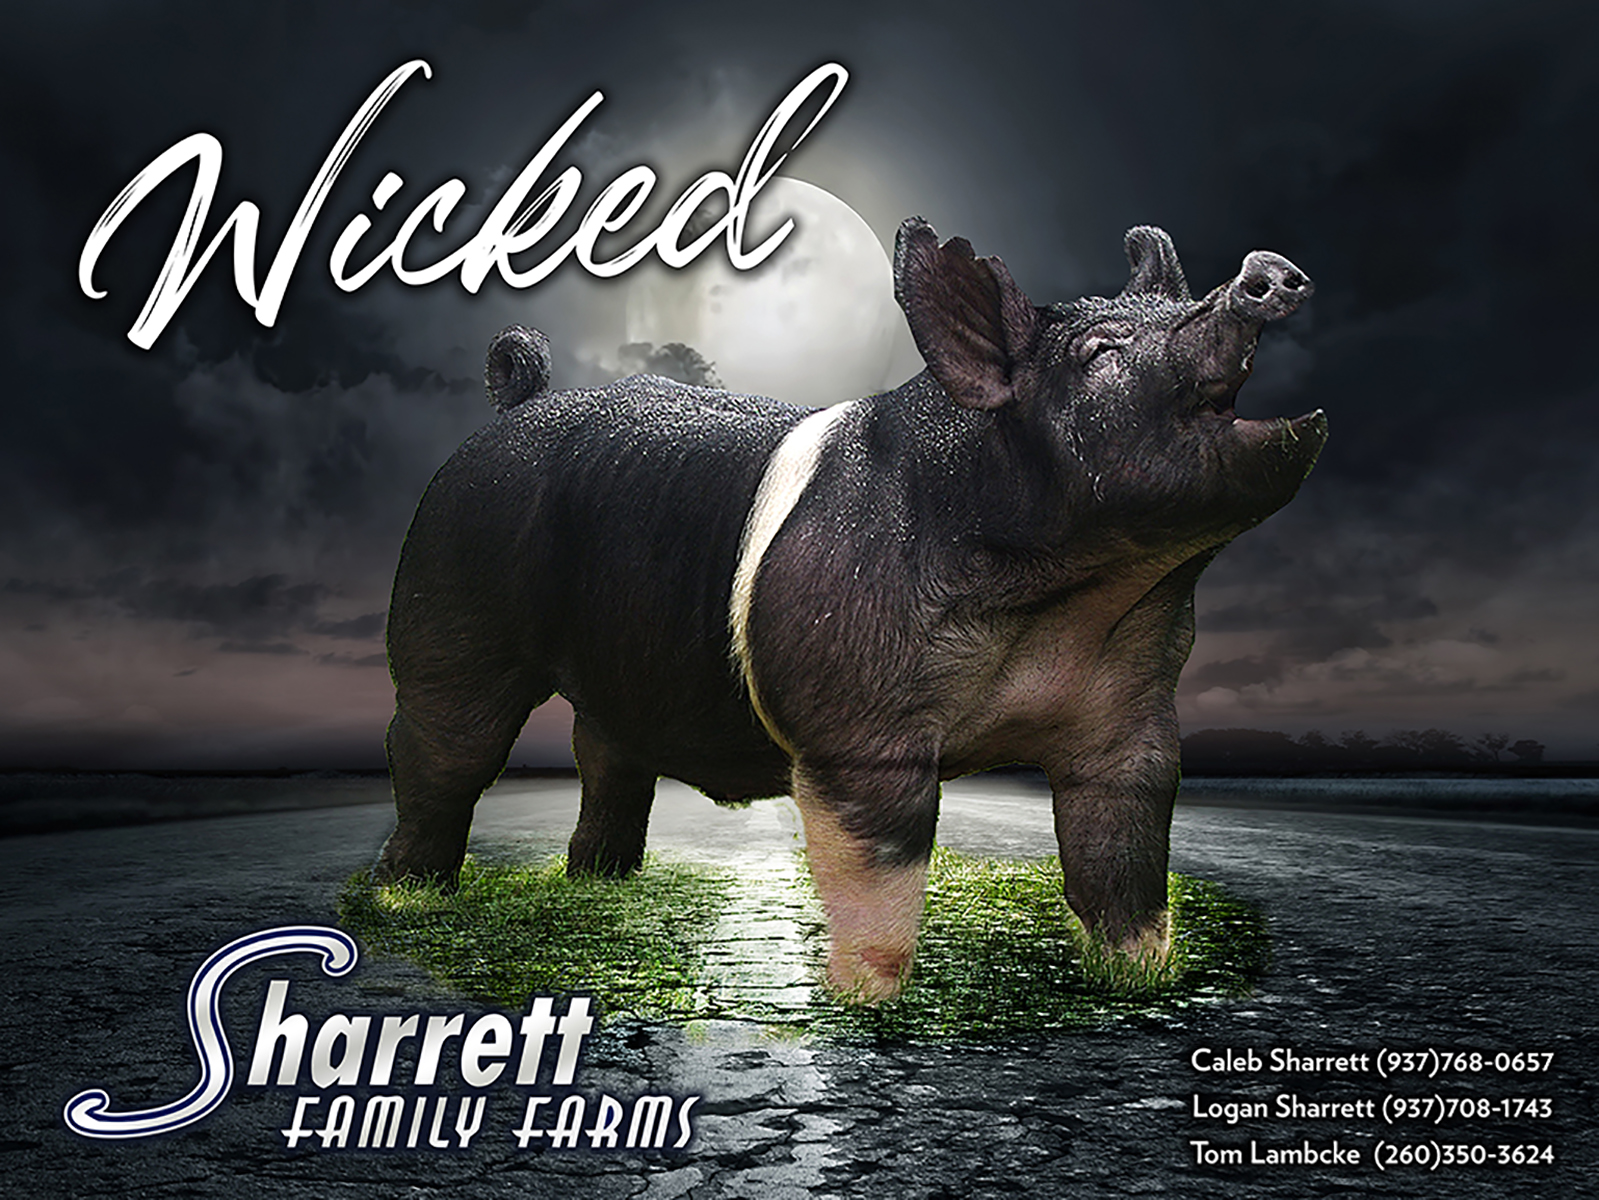 SharrettBanner19-Side2-Wicked_FINAL